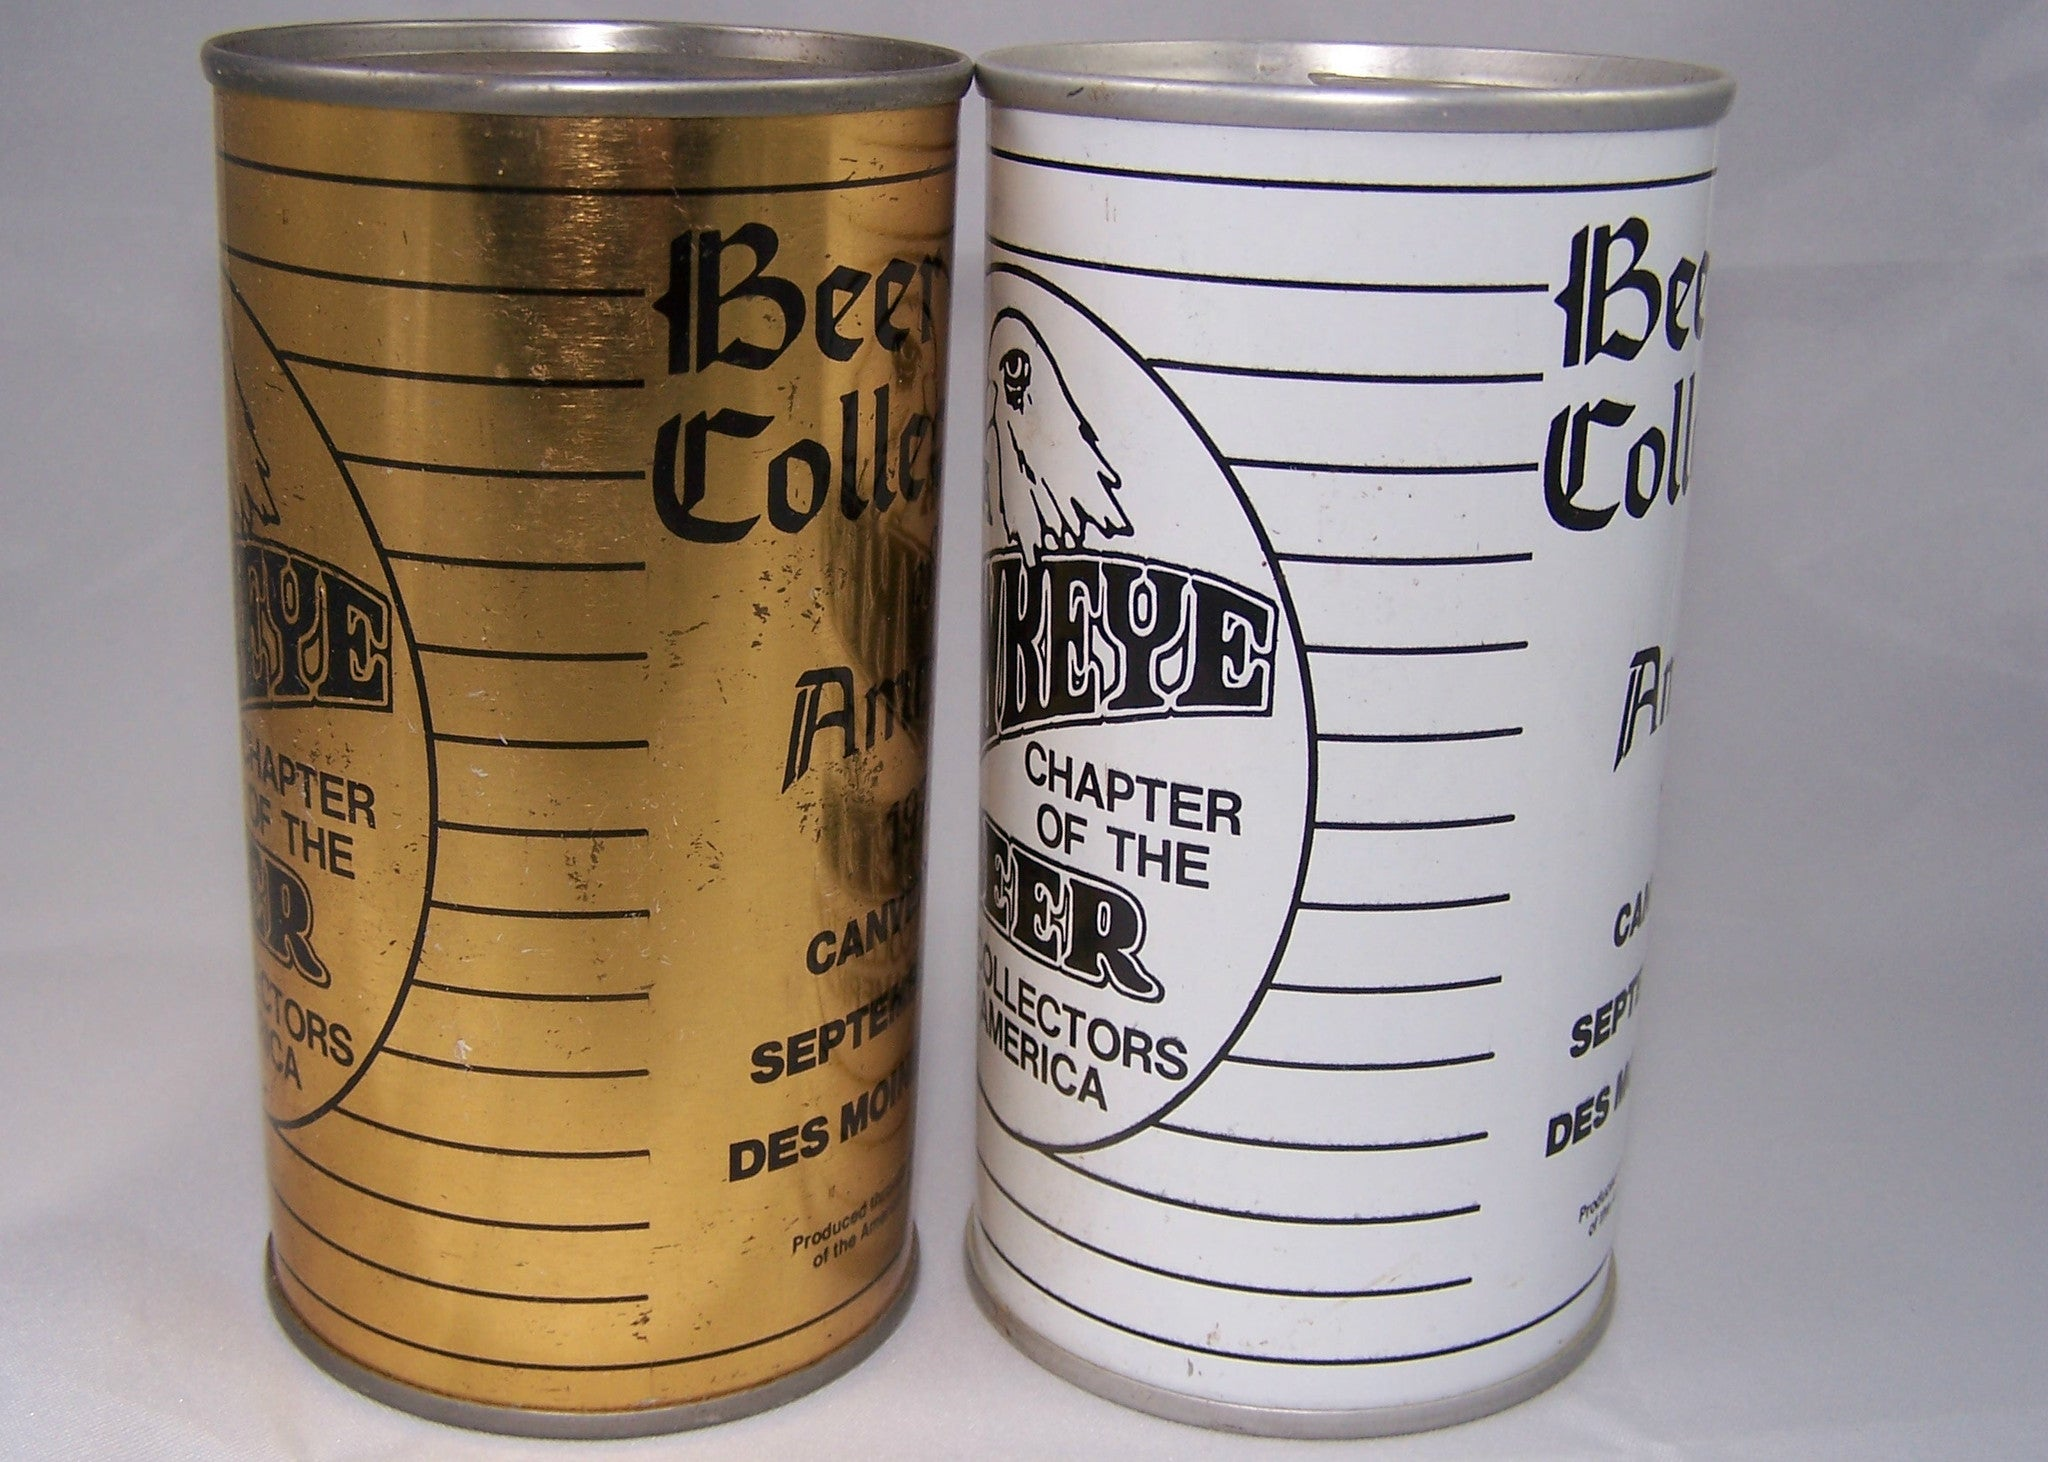 Pair of BCCA 1975 Canvention cans, USBC II 208-30, and Test can. Sold 6/25/15